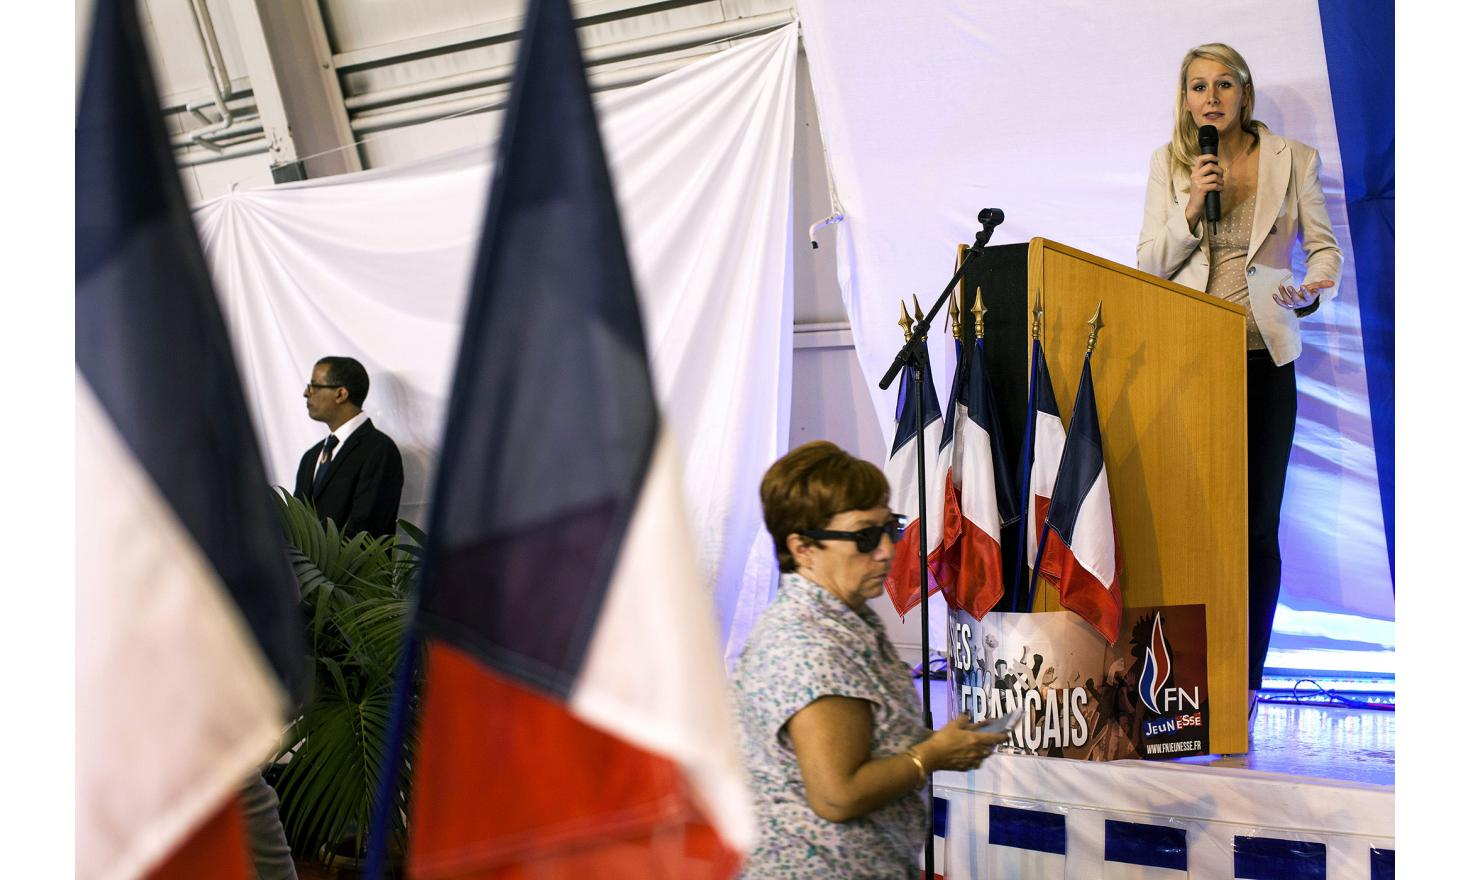 France, Le Pontet, October 18, 2014. Press conference with Marion Marechal Le Pen.